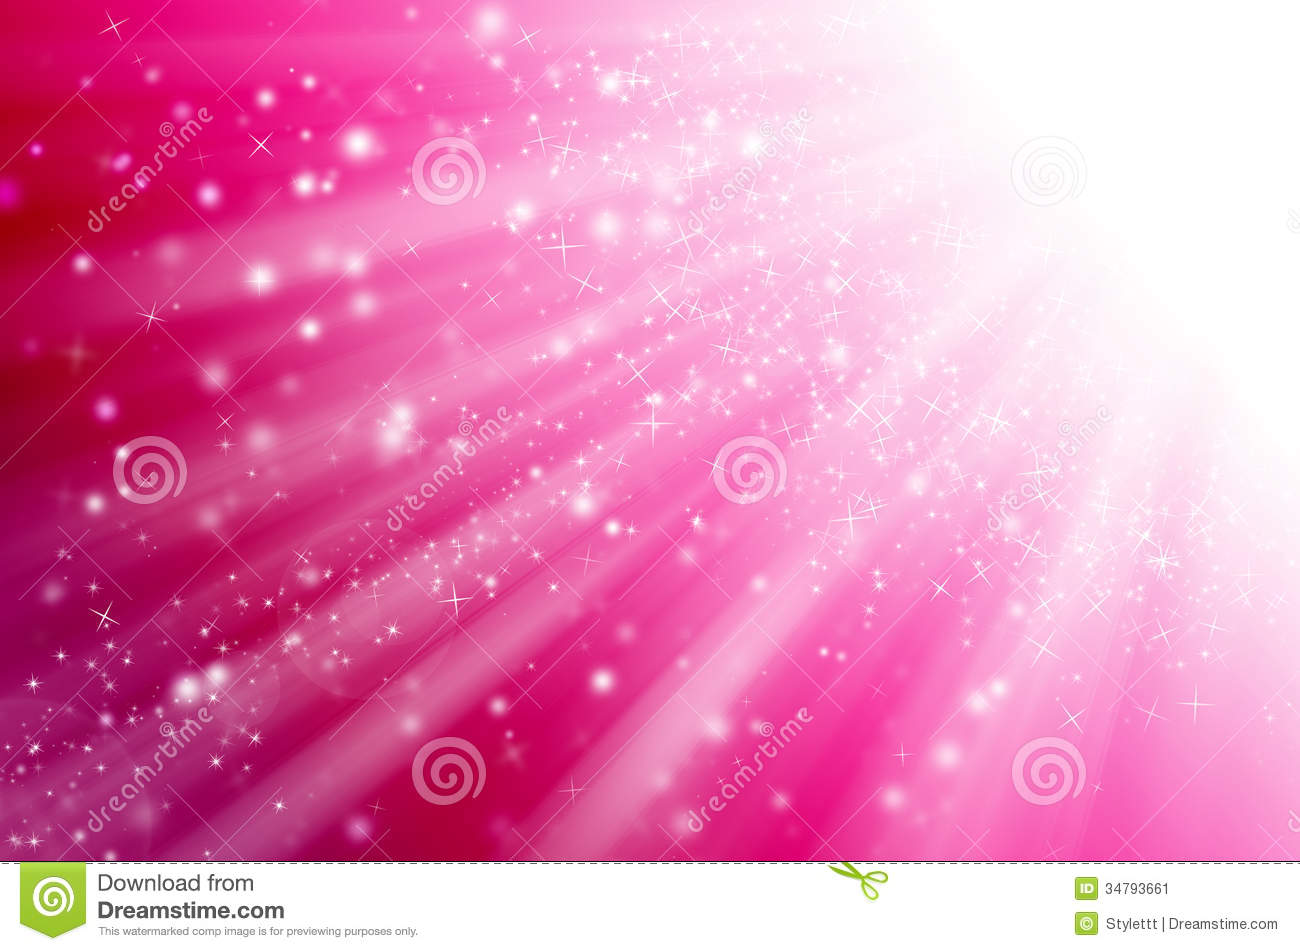 Abstract star light with pink background stock image image of abstract star light with pink background thecheapjerseys Choice Image